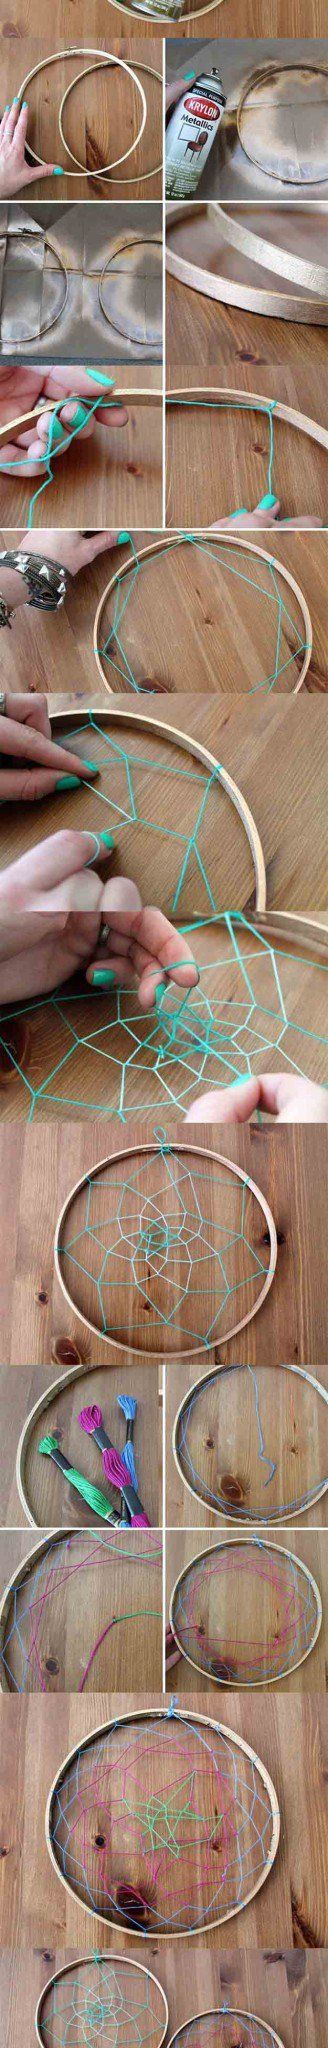 Best 25 easy diy crafts ideas on pinterest easy diy for Cool craft ideas for adults